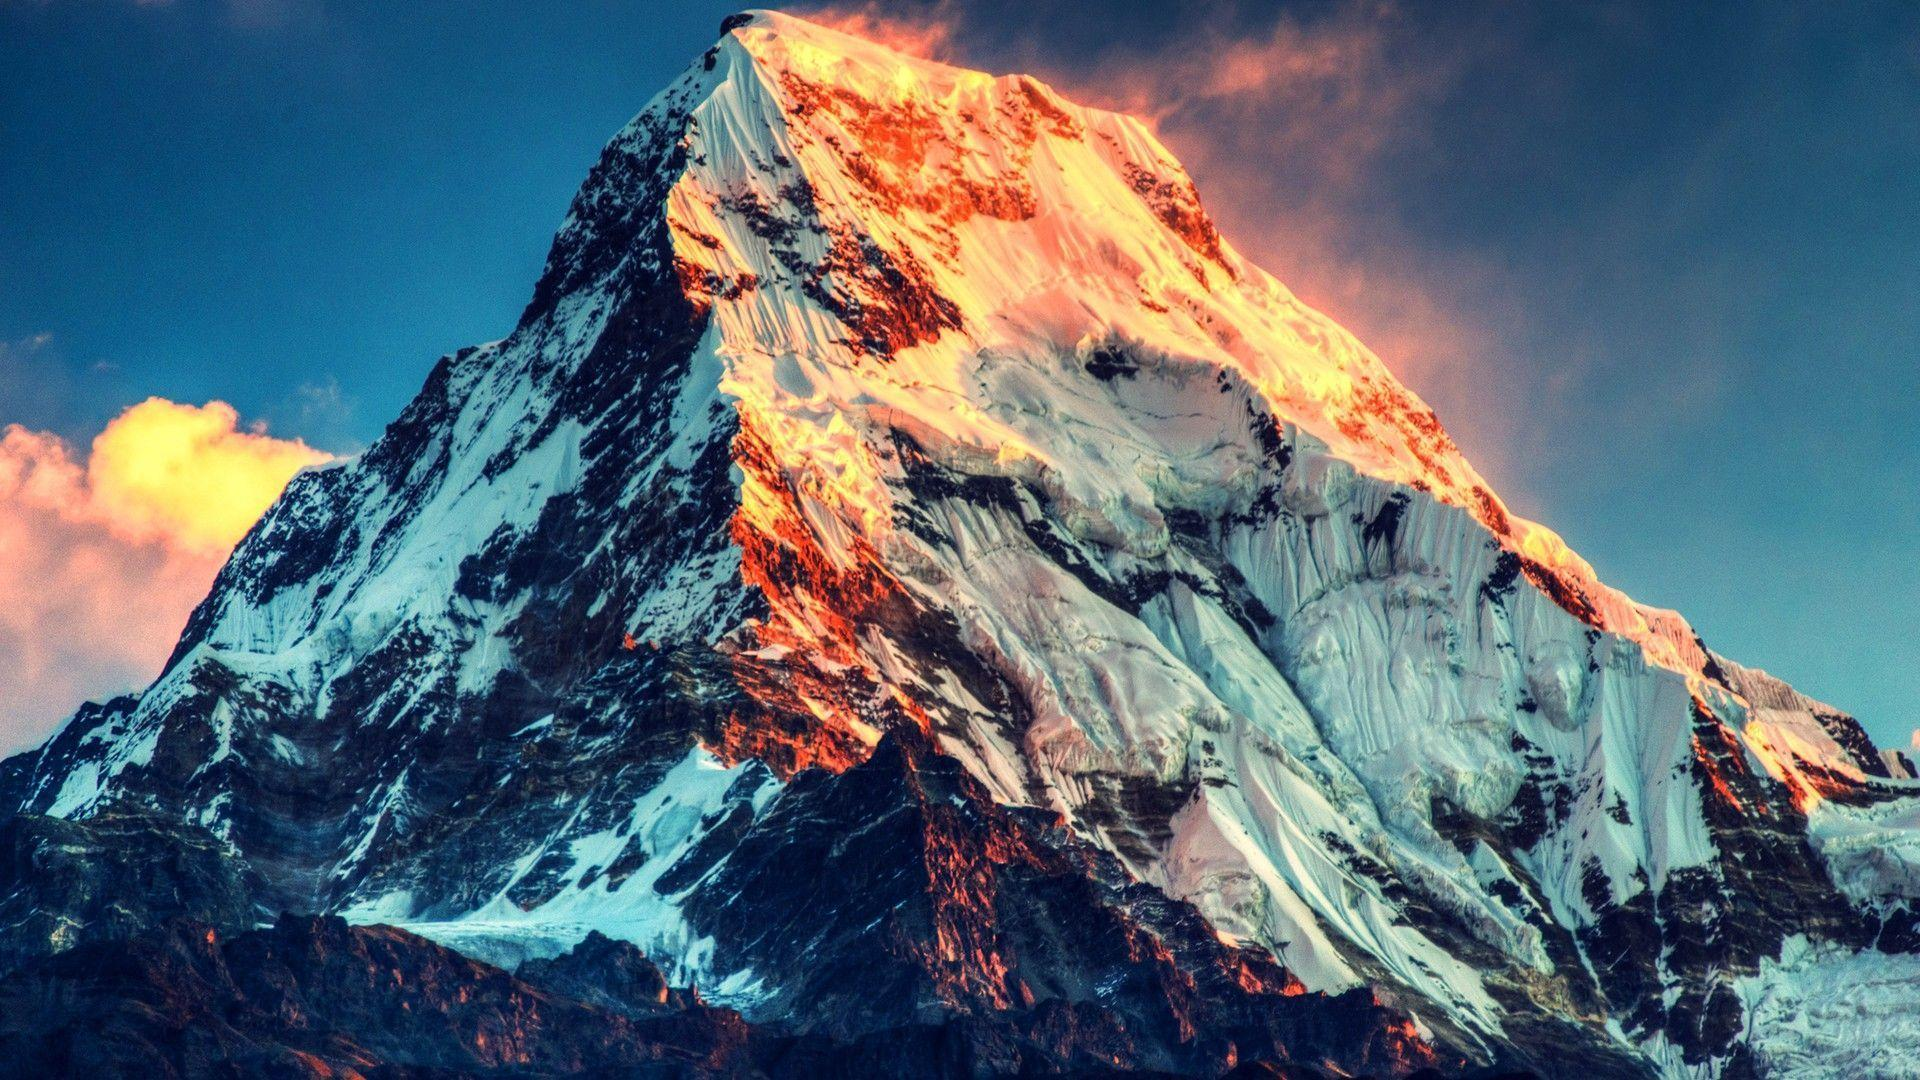 Burning Sunlight Mount Everest HD Wallpaper » FullHDWpp - Full HD ...